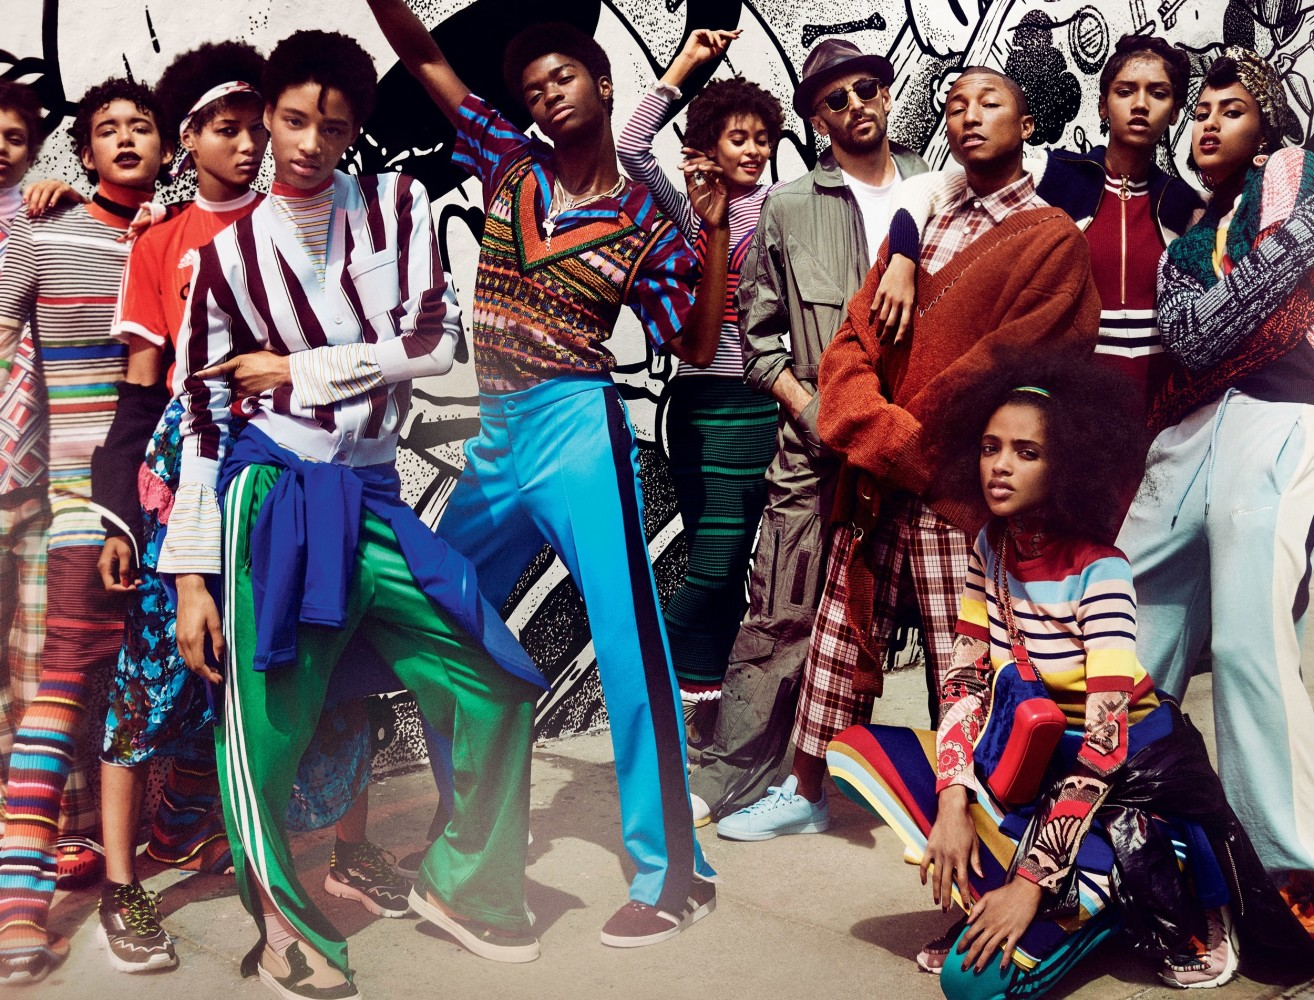 ALTON MASON FOR VOGUE 125TH ANNIVERSARY